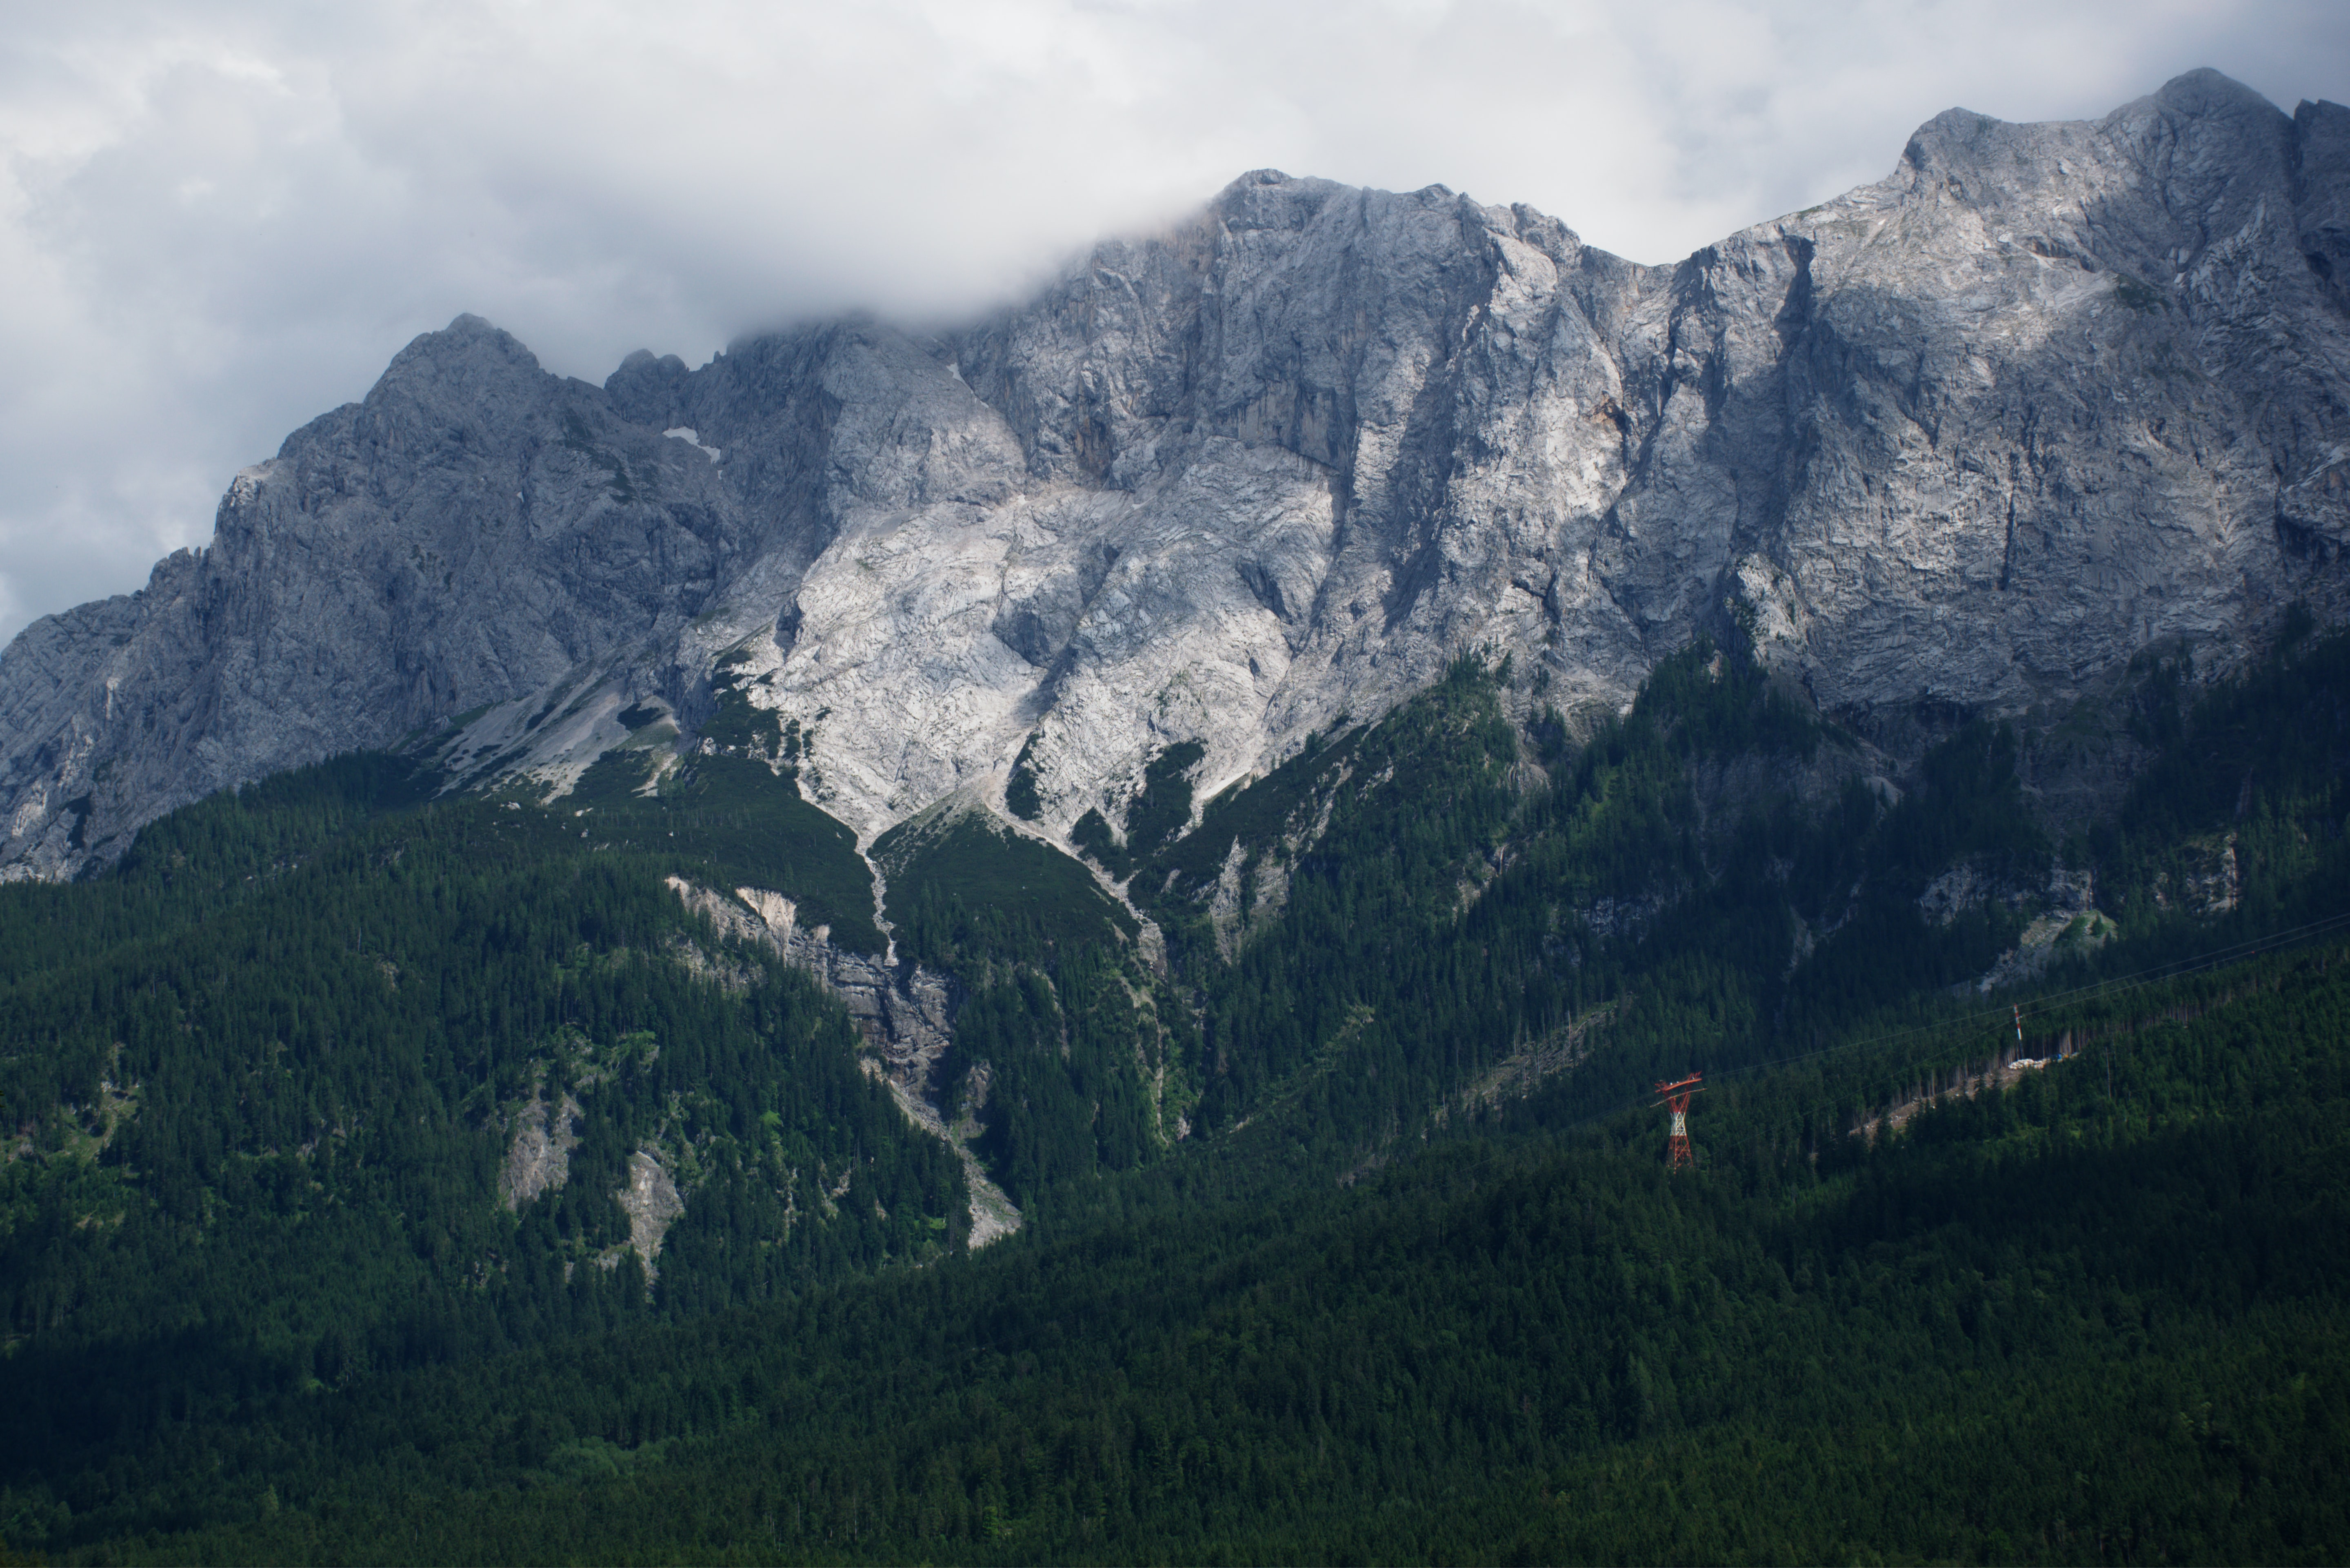 Rugged mountains with wooded hills at their foot